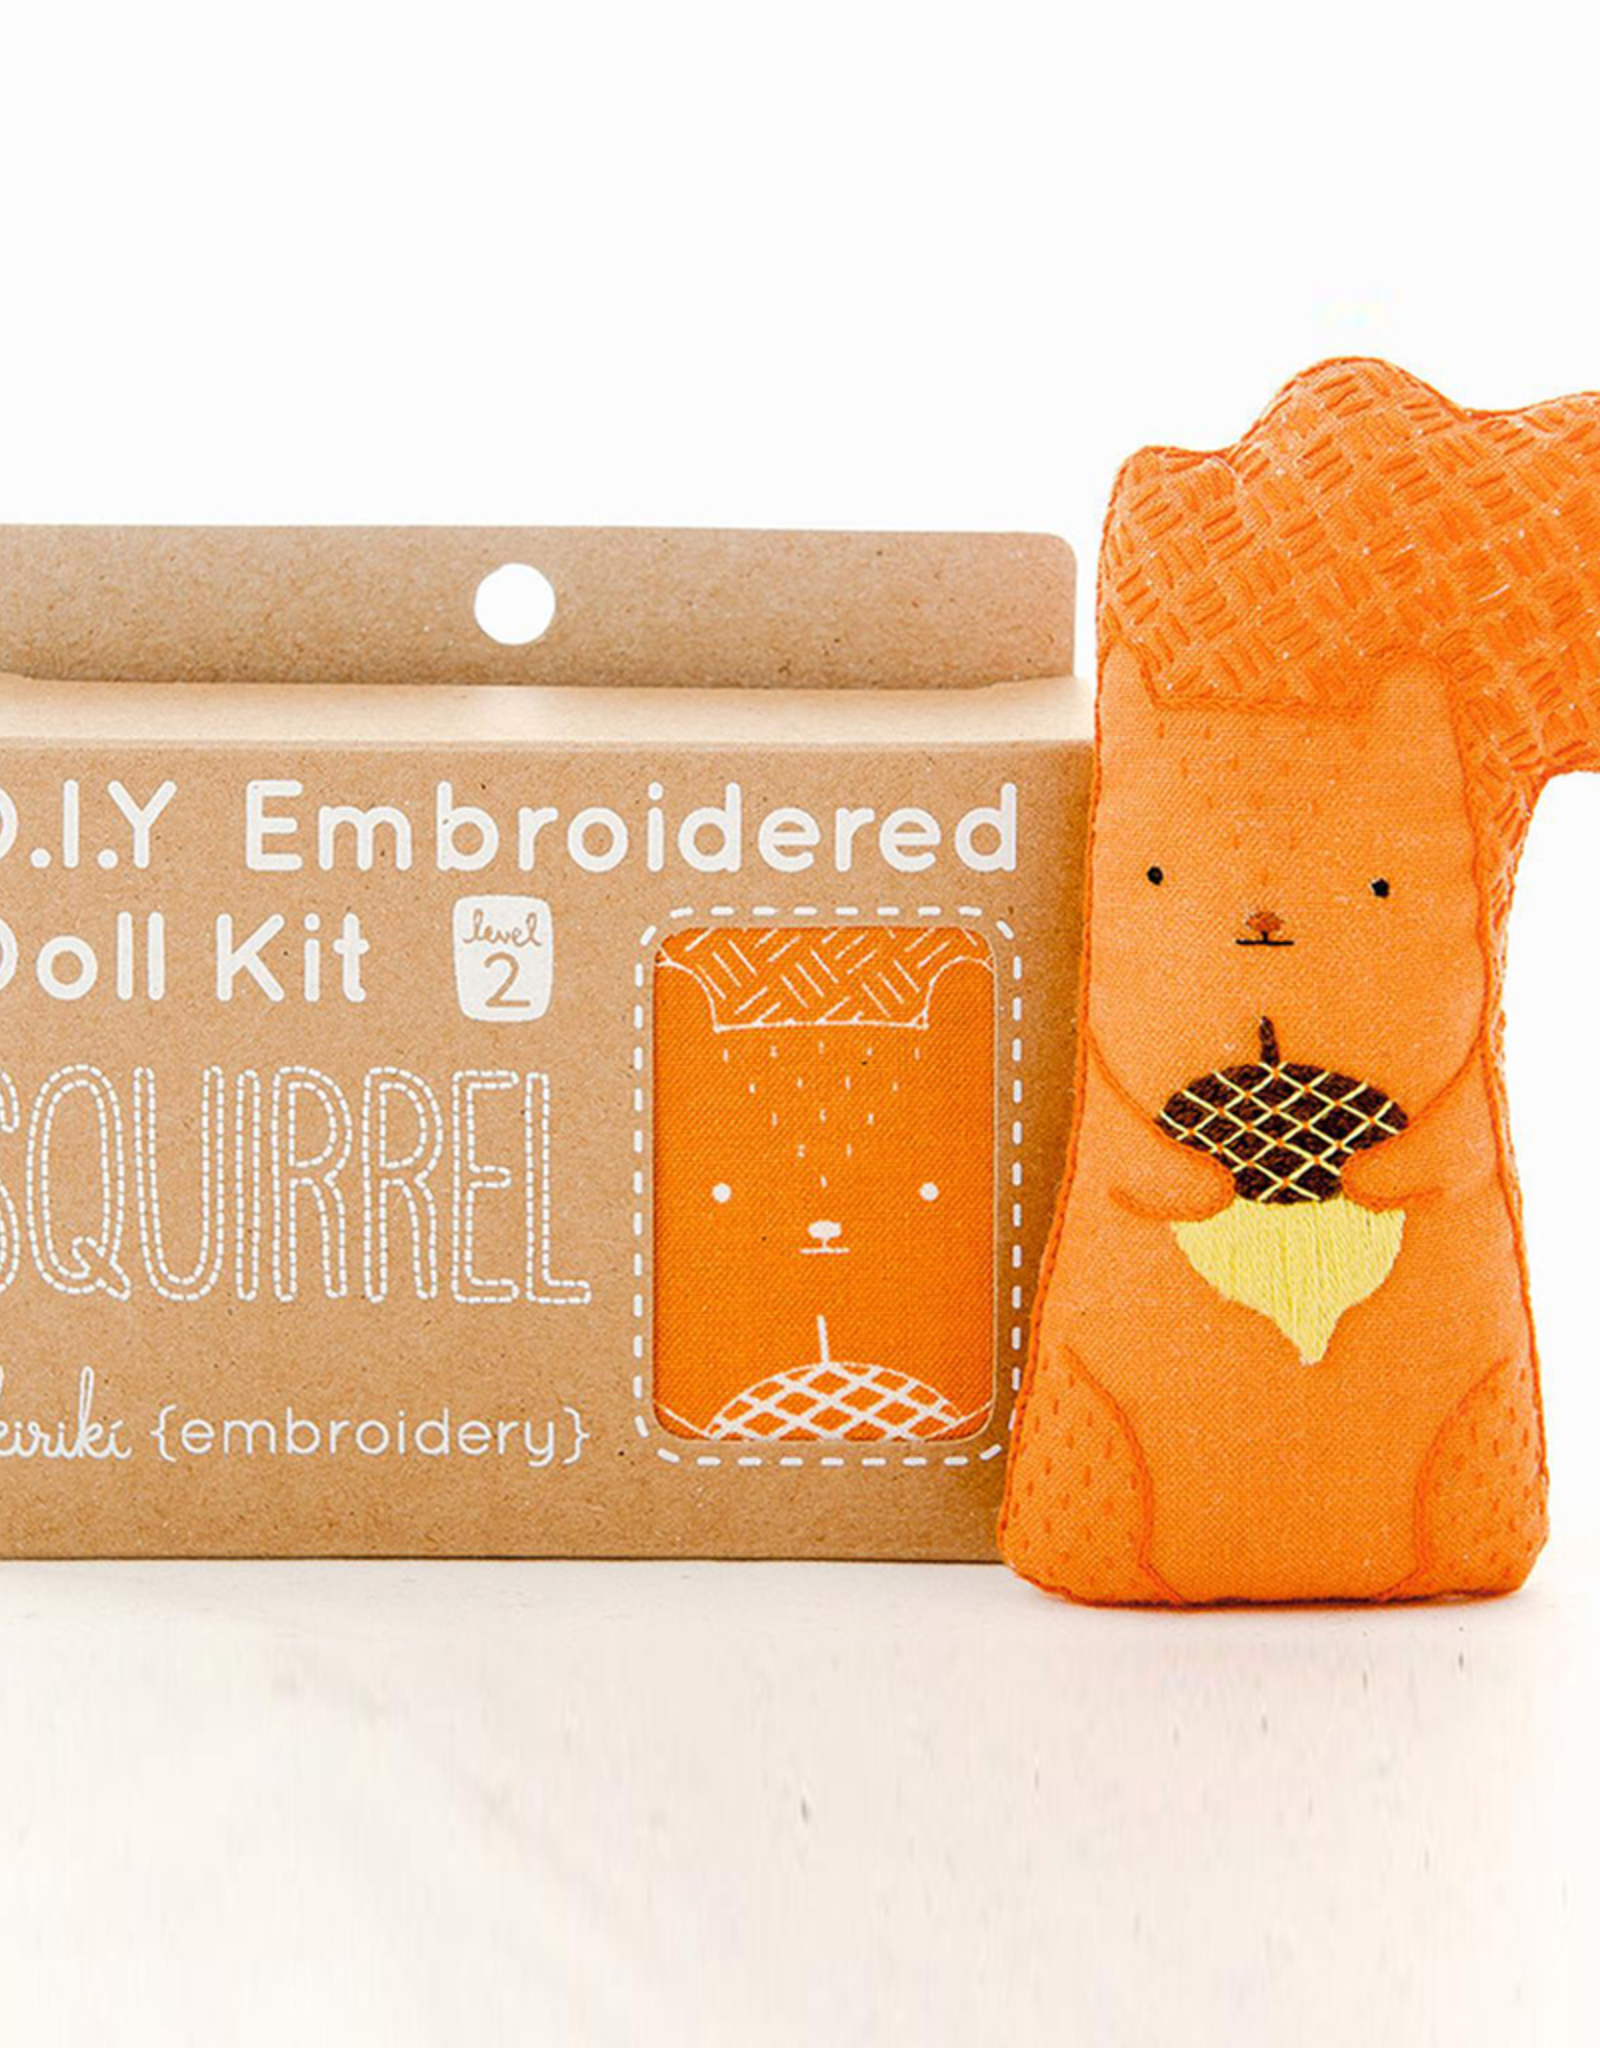 Handmade Embroidery Kit - Squirrel